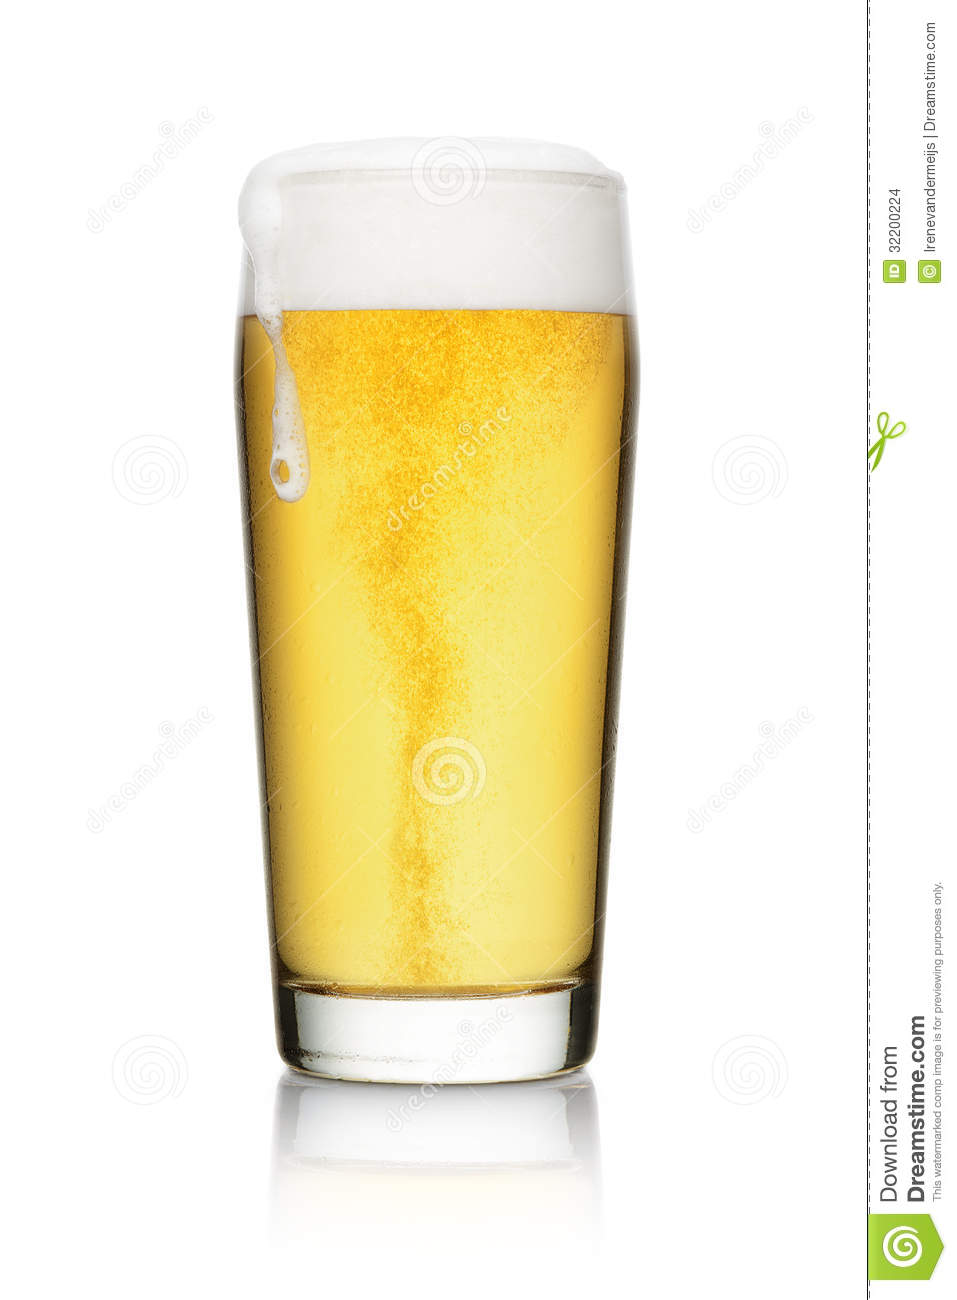 Beer into glass isolated